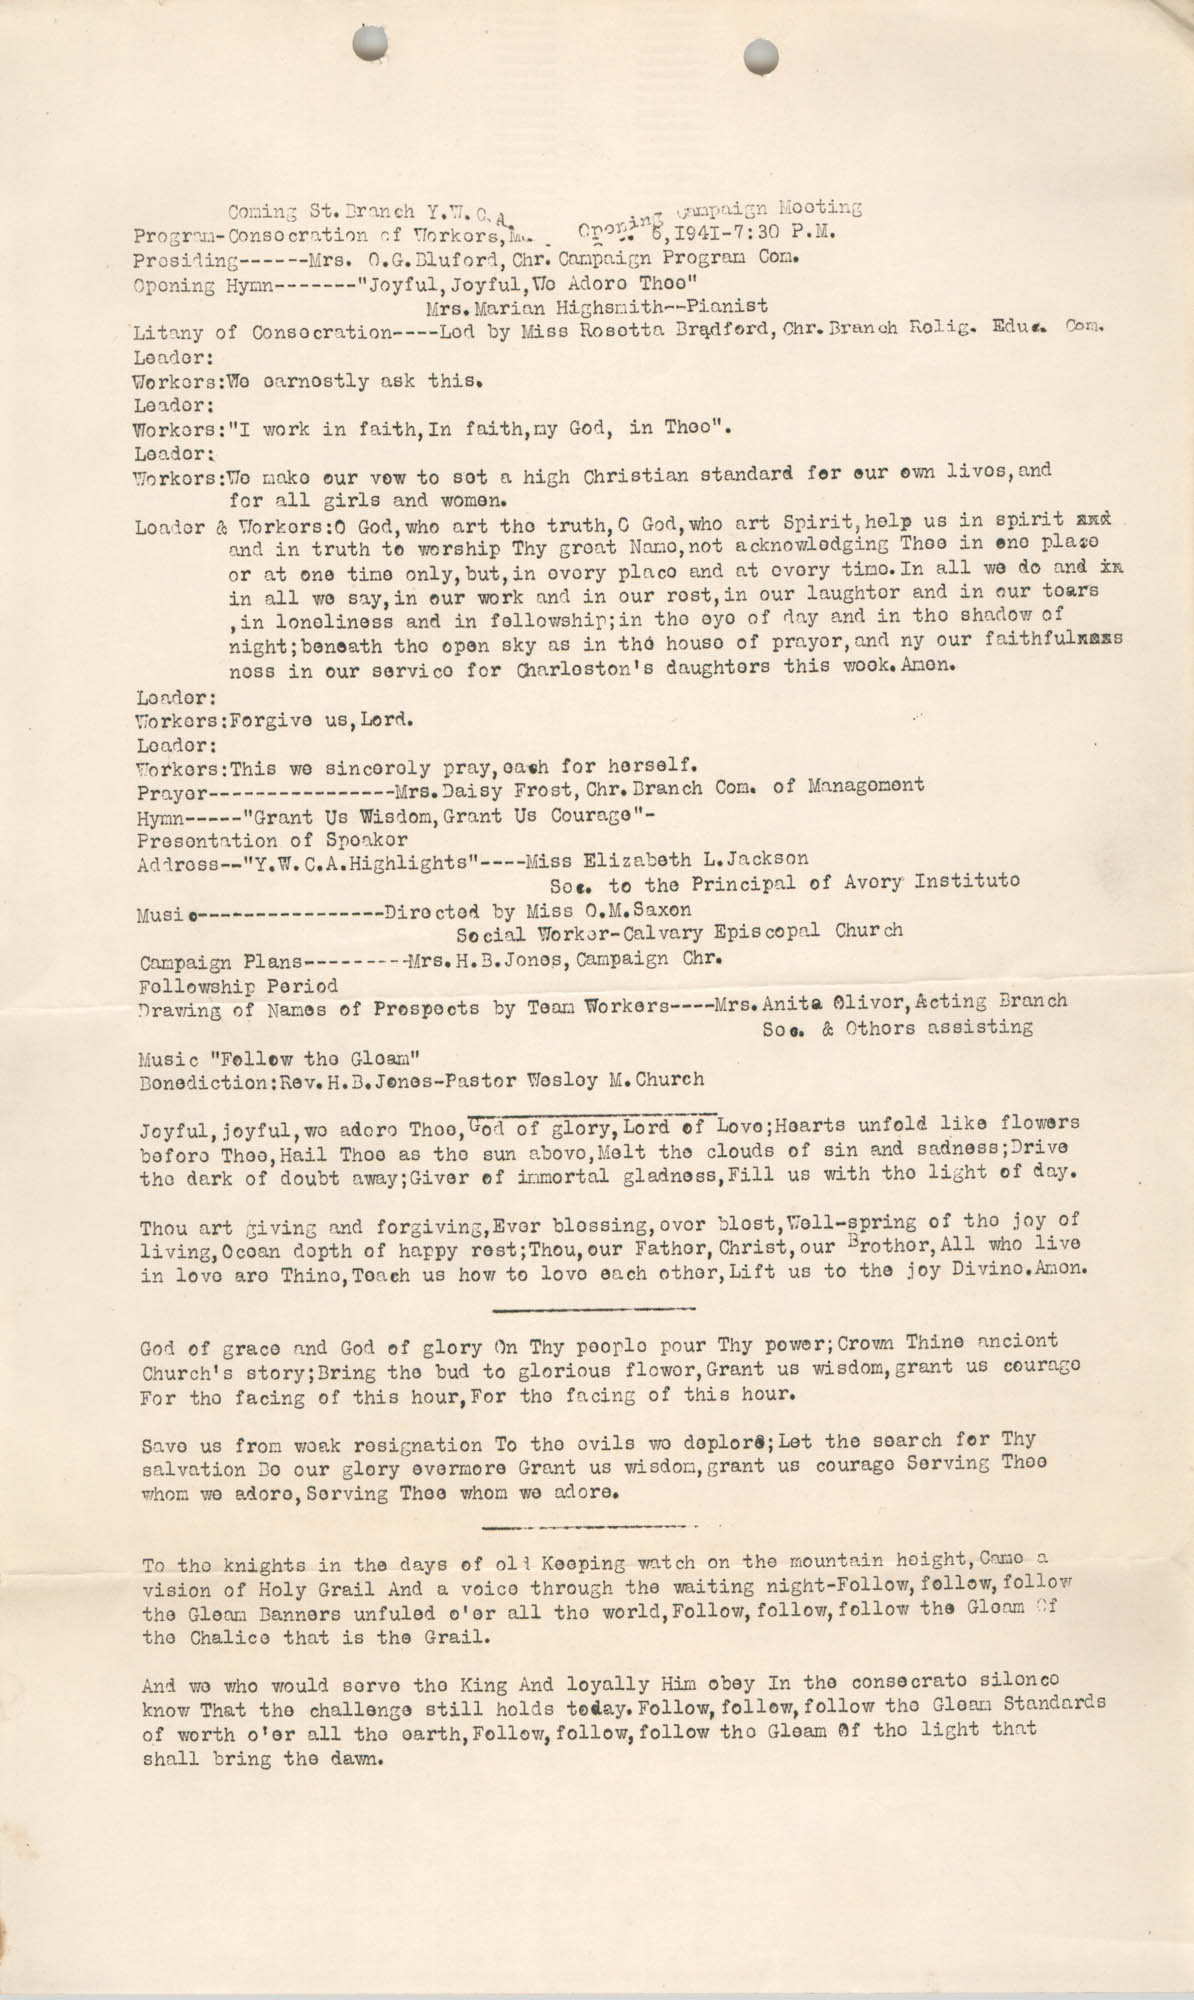 Minutes to the Opening Campaign Meeting, Coming Street Y.W.C.A., 1941